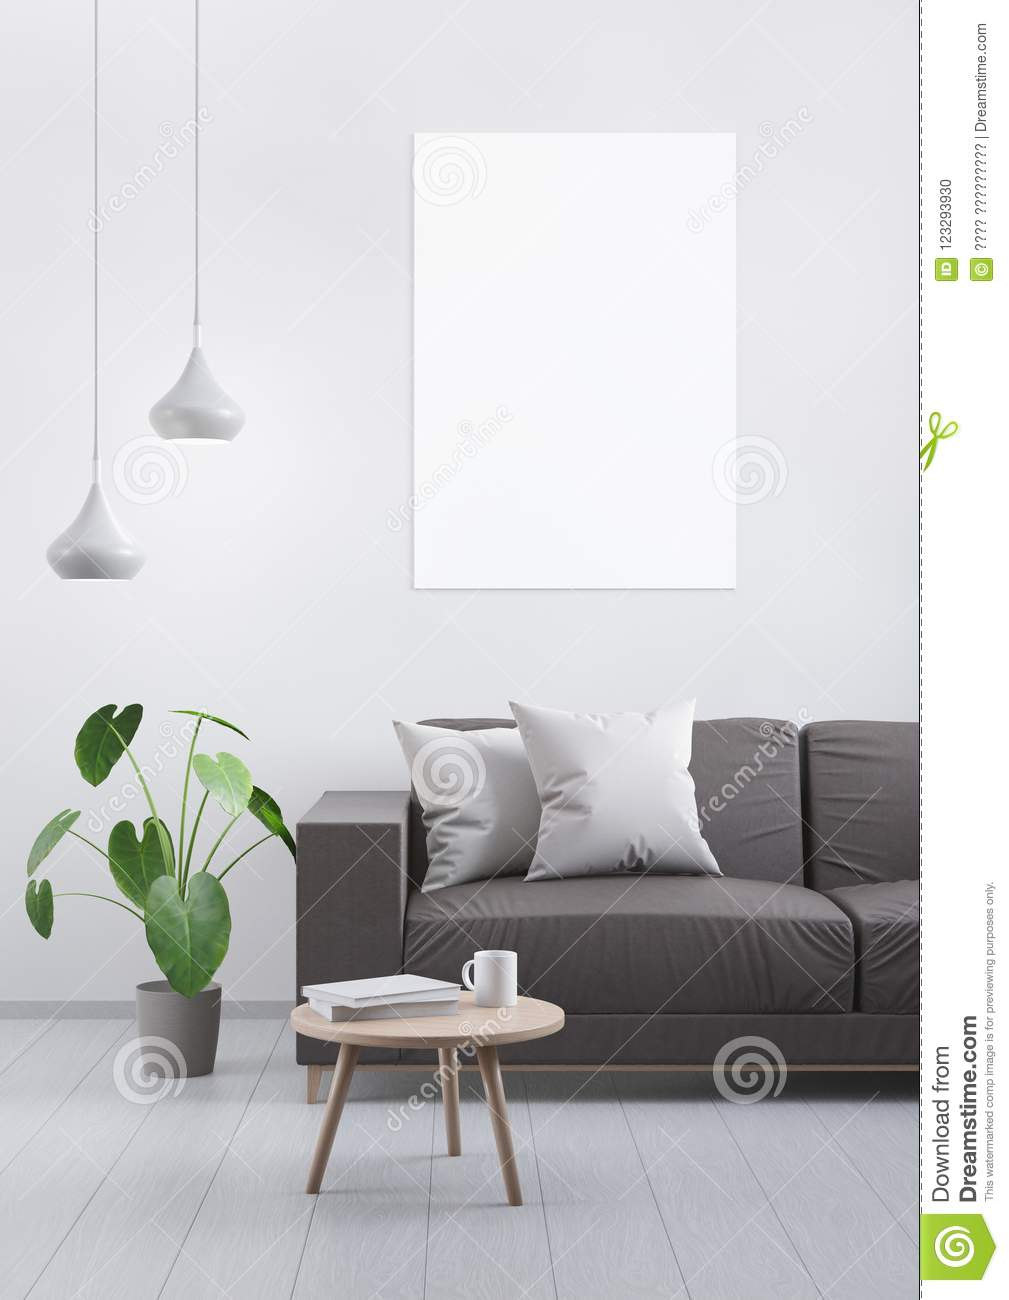 modern brown leather sofa diy pallet sectional instructions vintage living room on a grey wooden floor and light wall